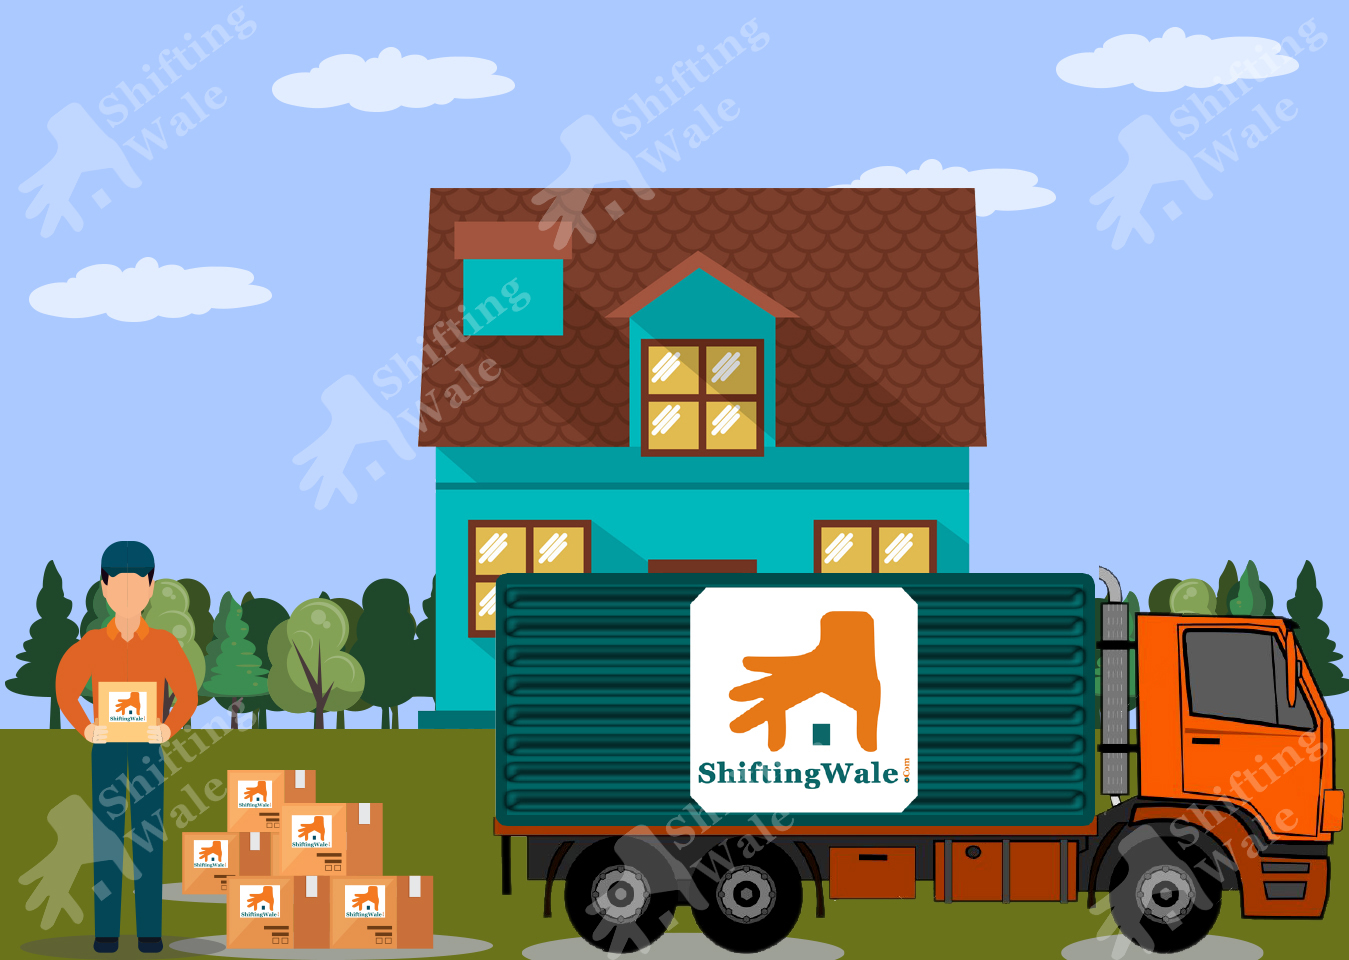 Mumbai to Roorkee Trusted Packers And Movers Services Get Top Relocation